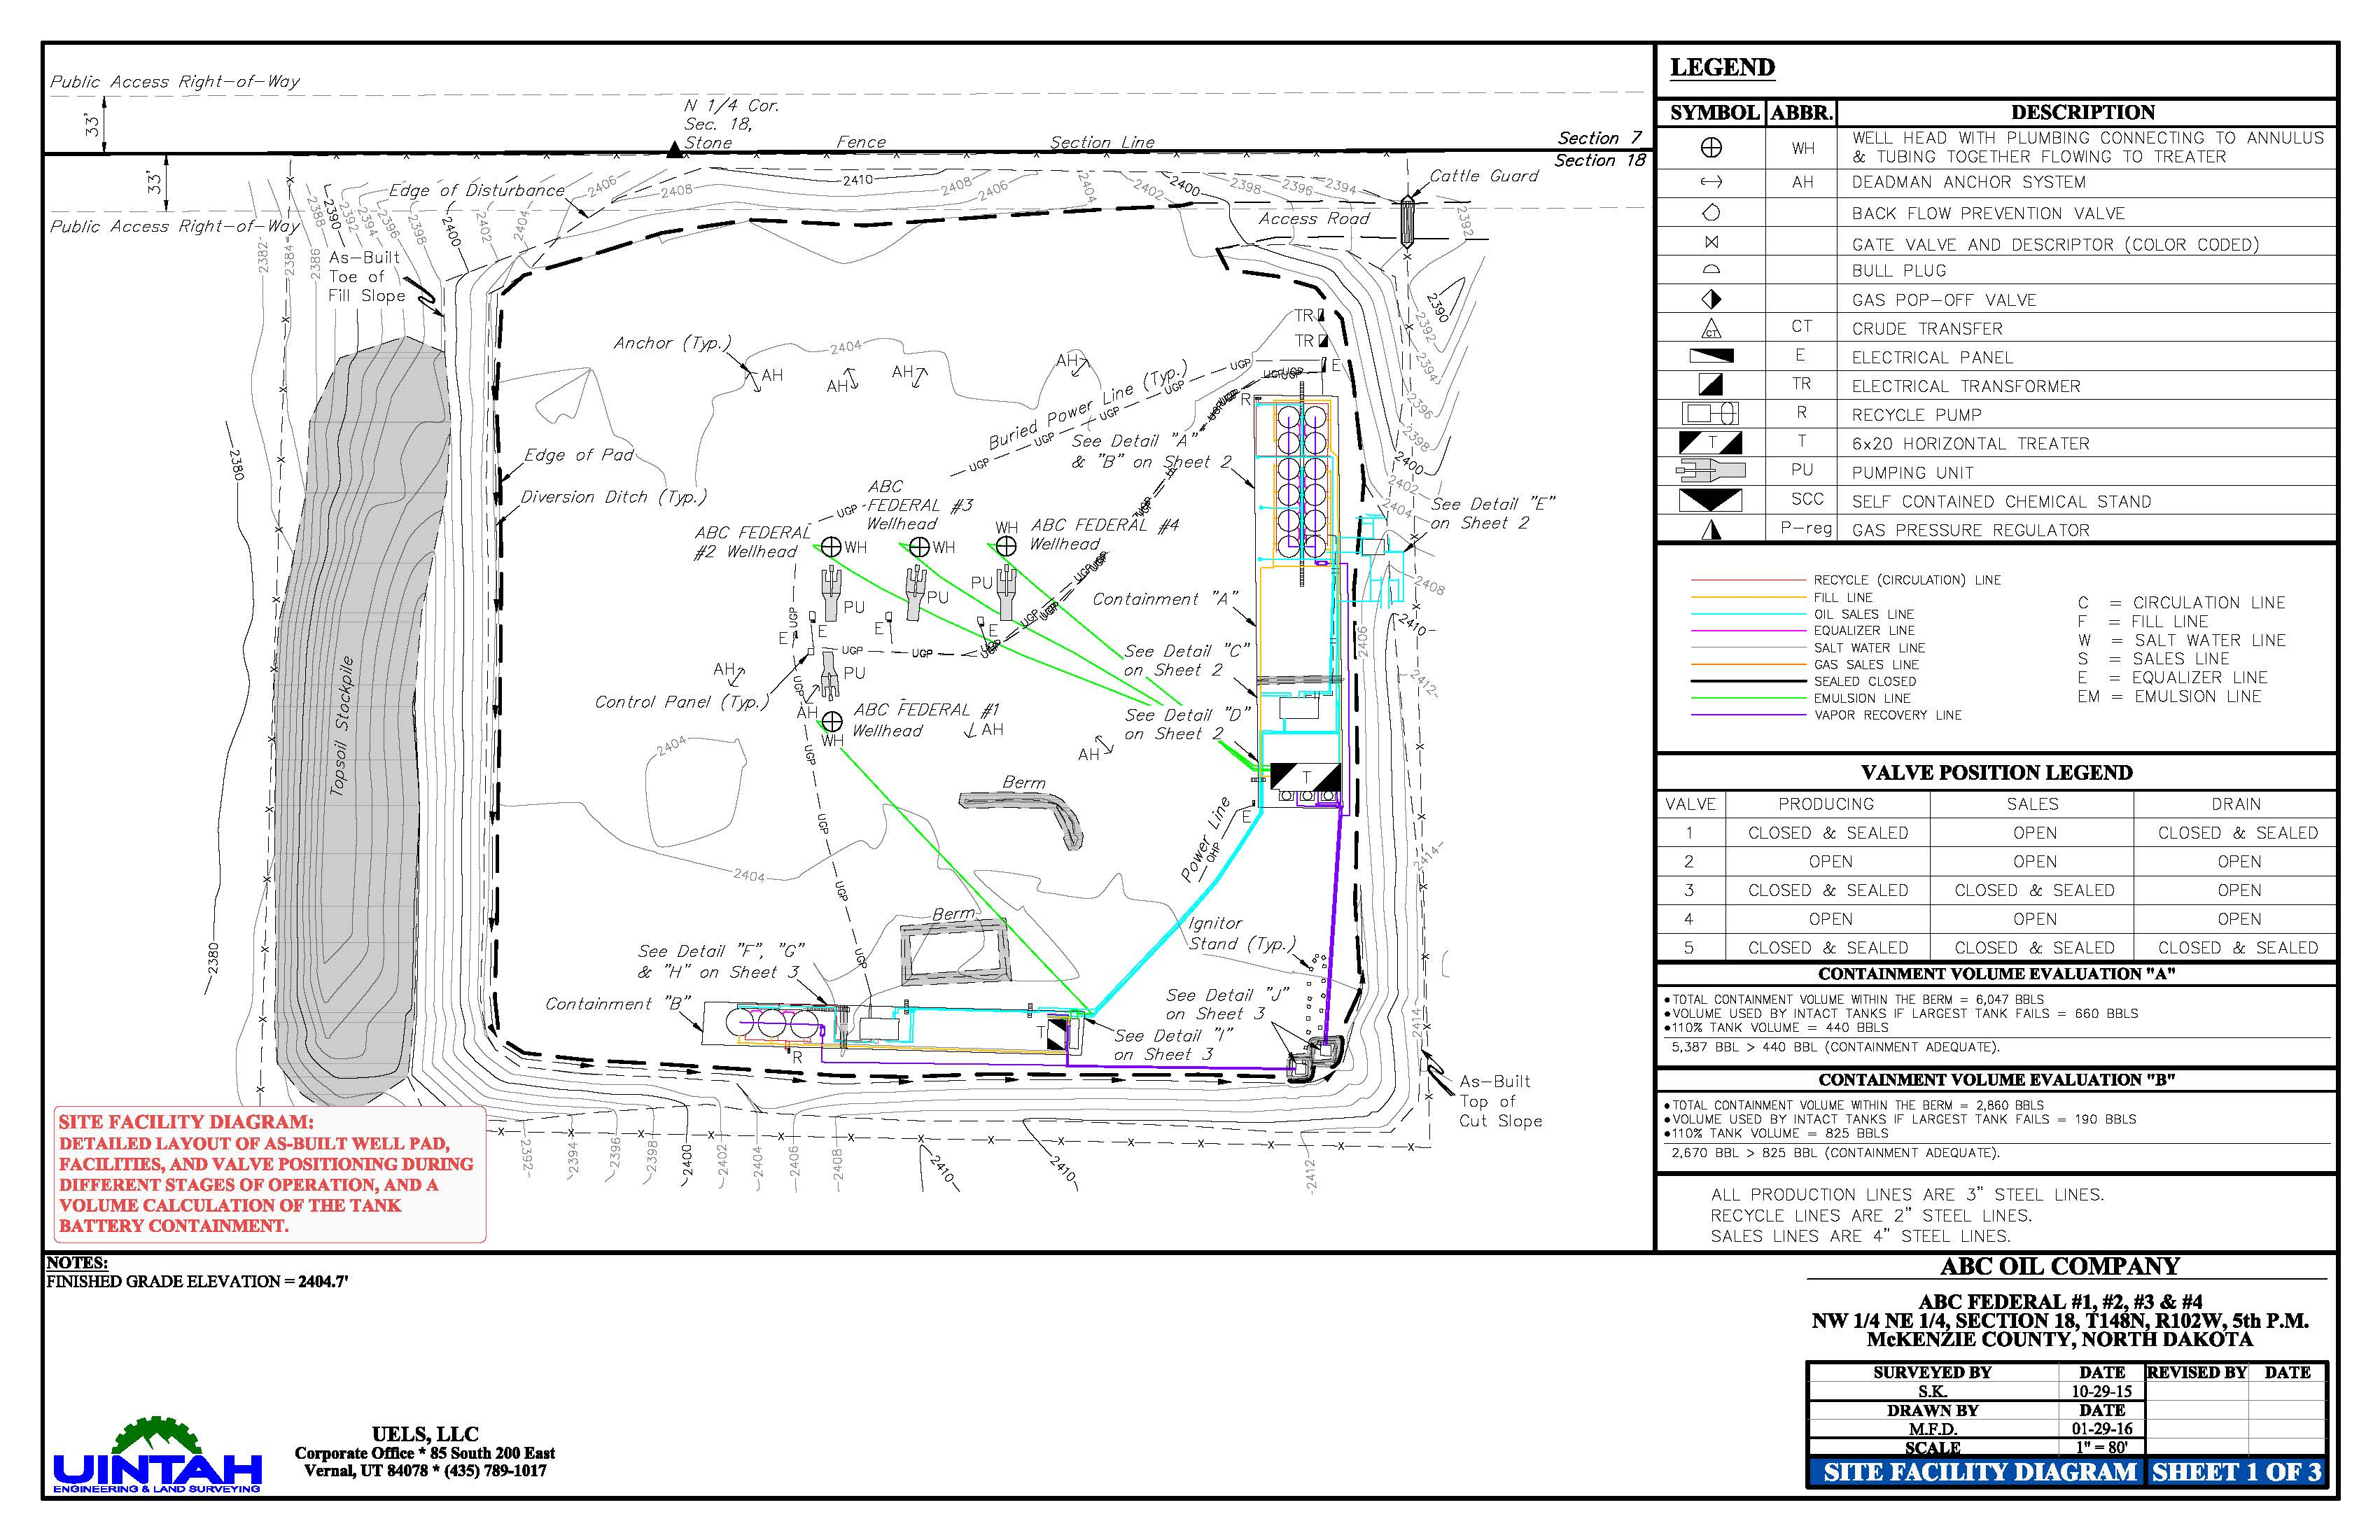 site security diagrams for well pads